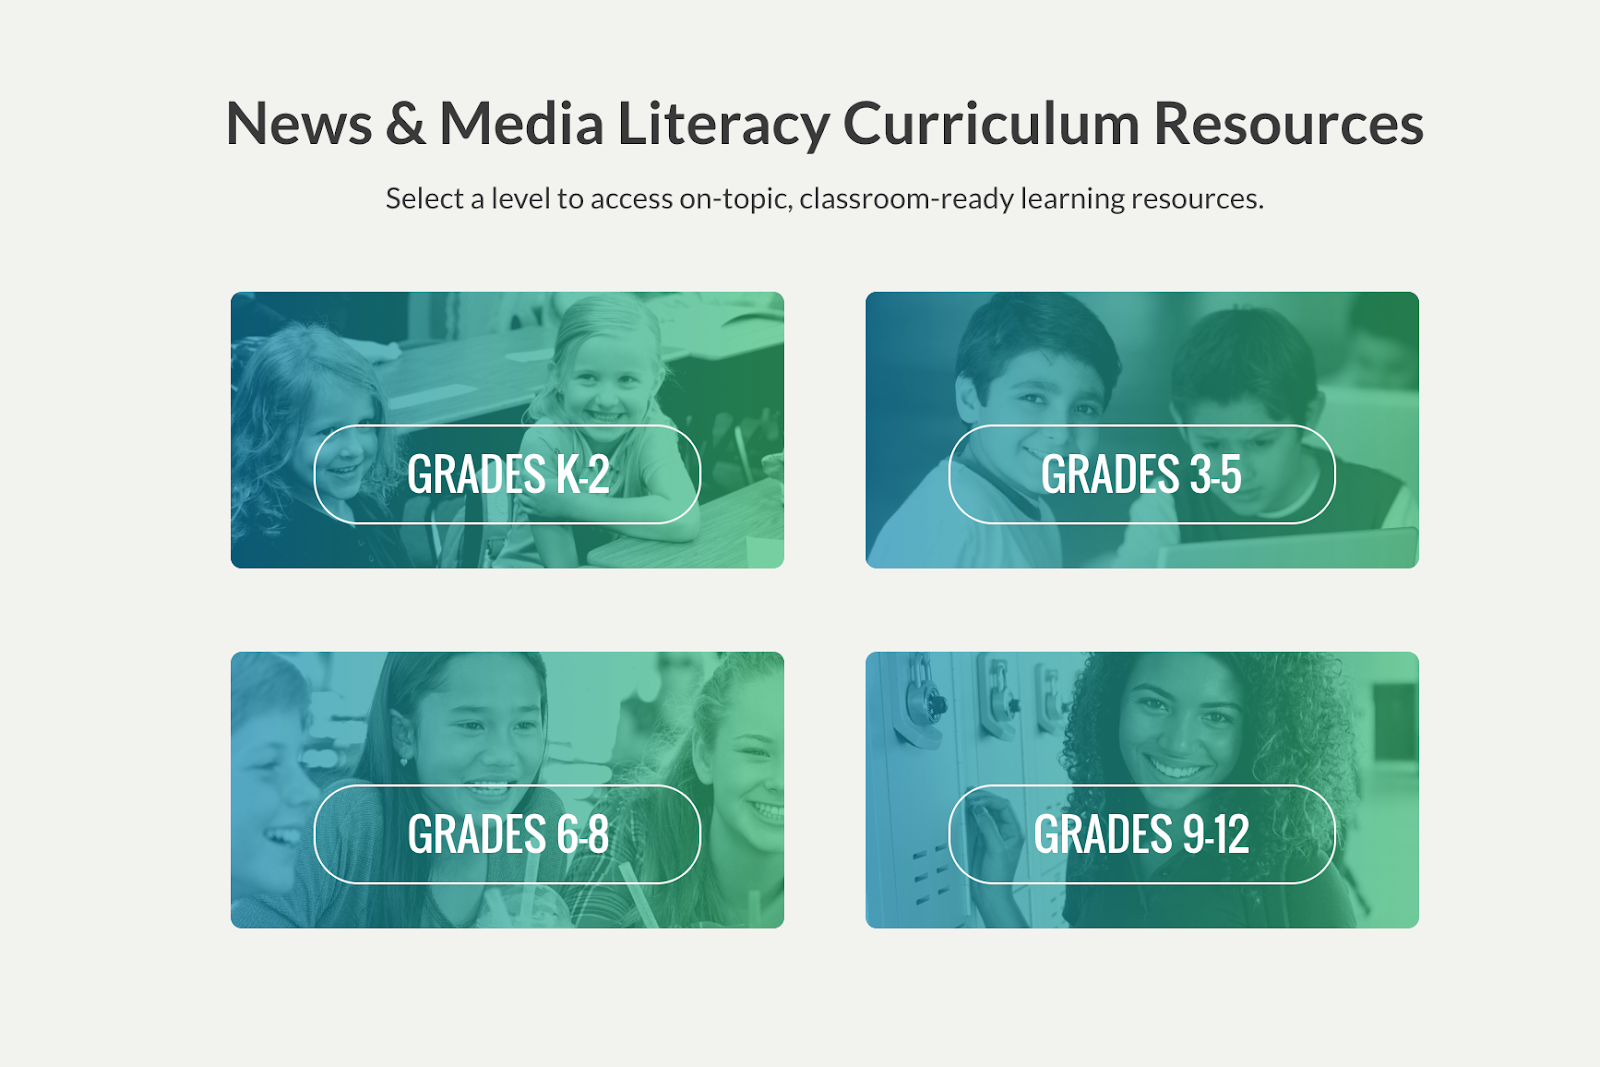 News Media & Literacy Curriculum Resources